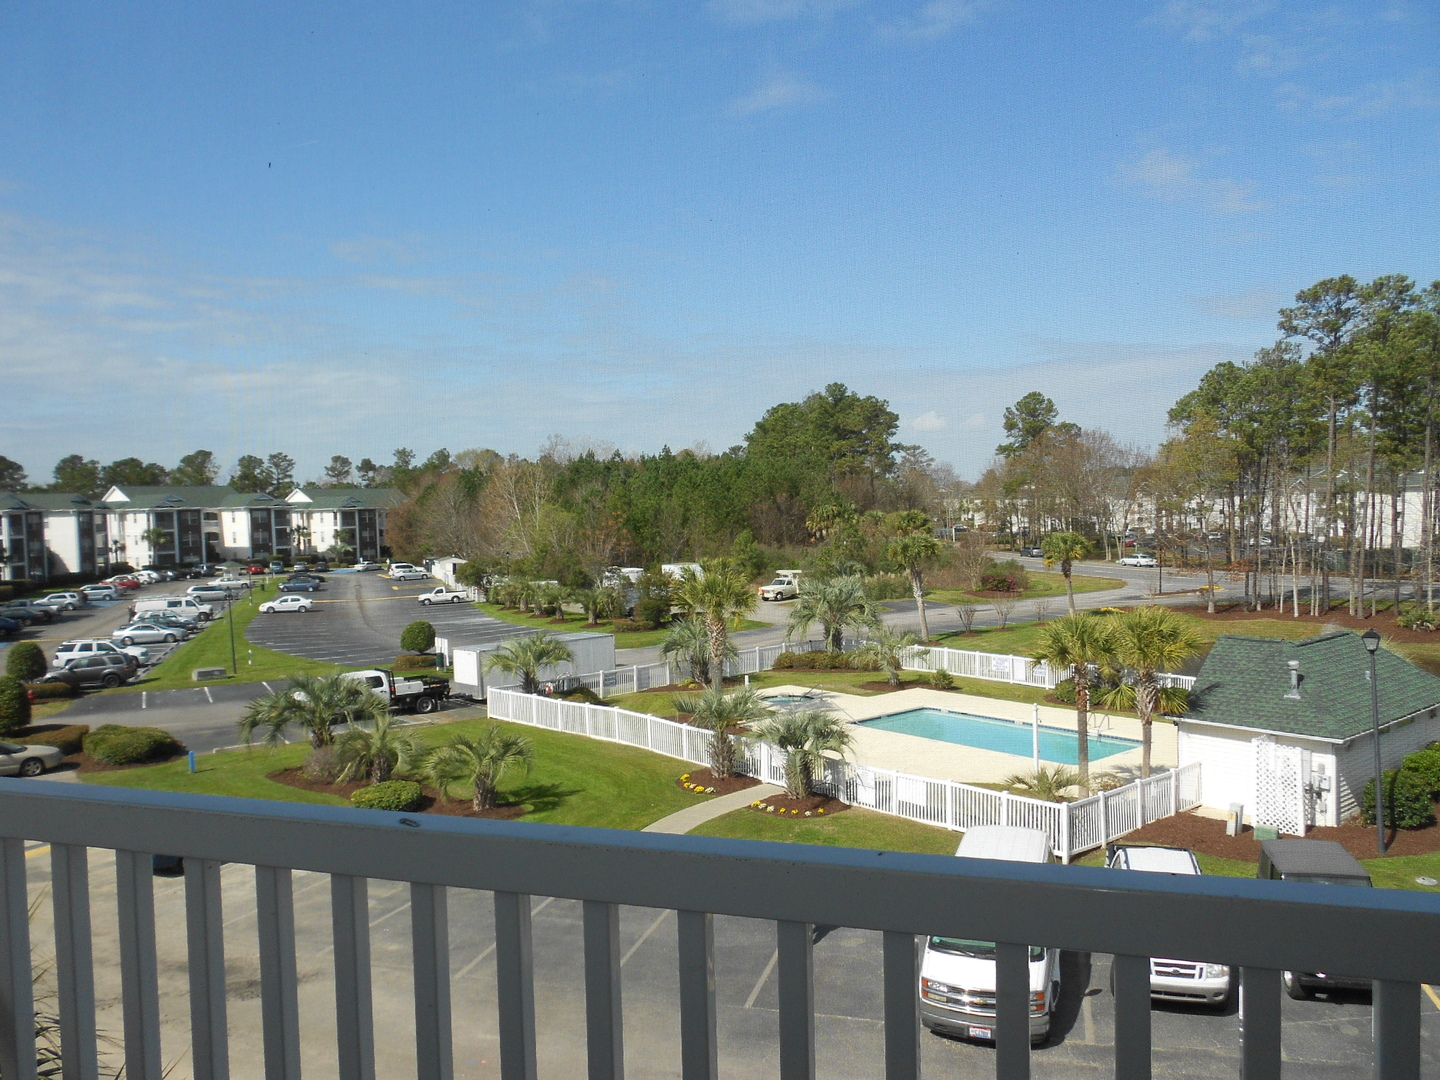 498 river oaks drive, unit 59-o, myrtle beach, sc 29579